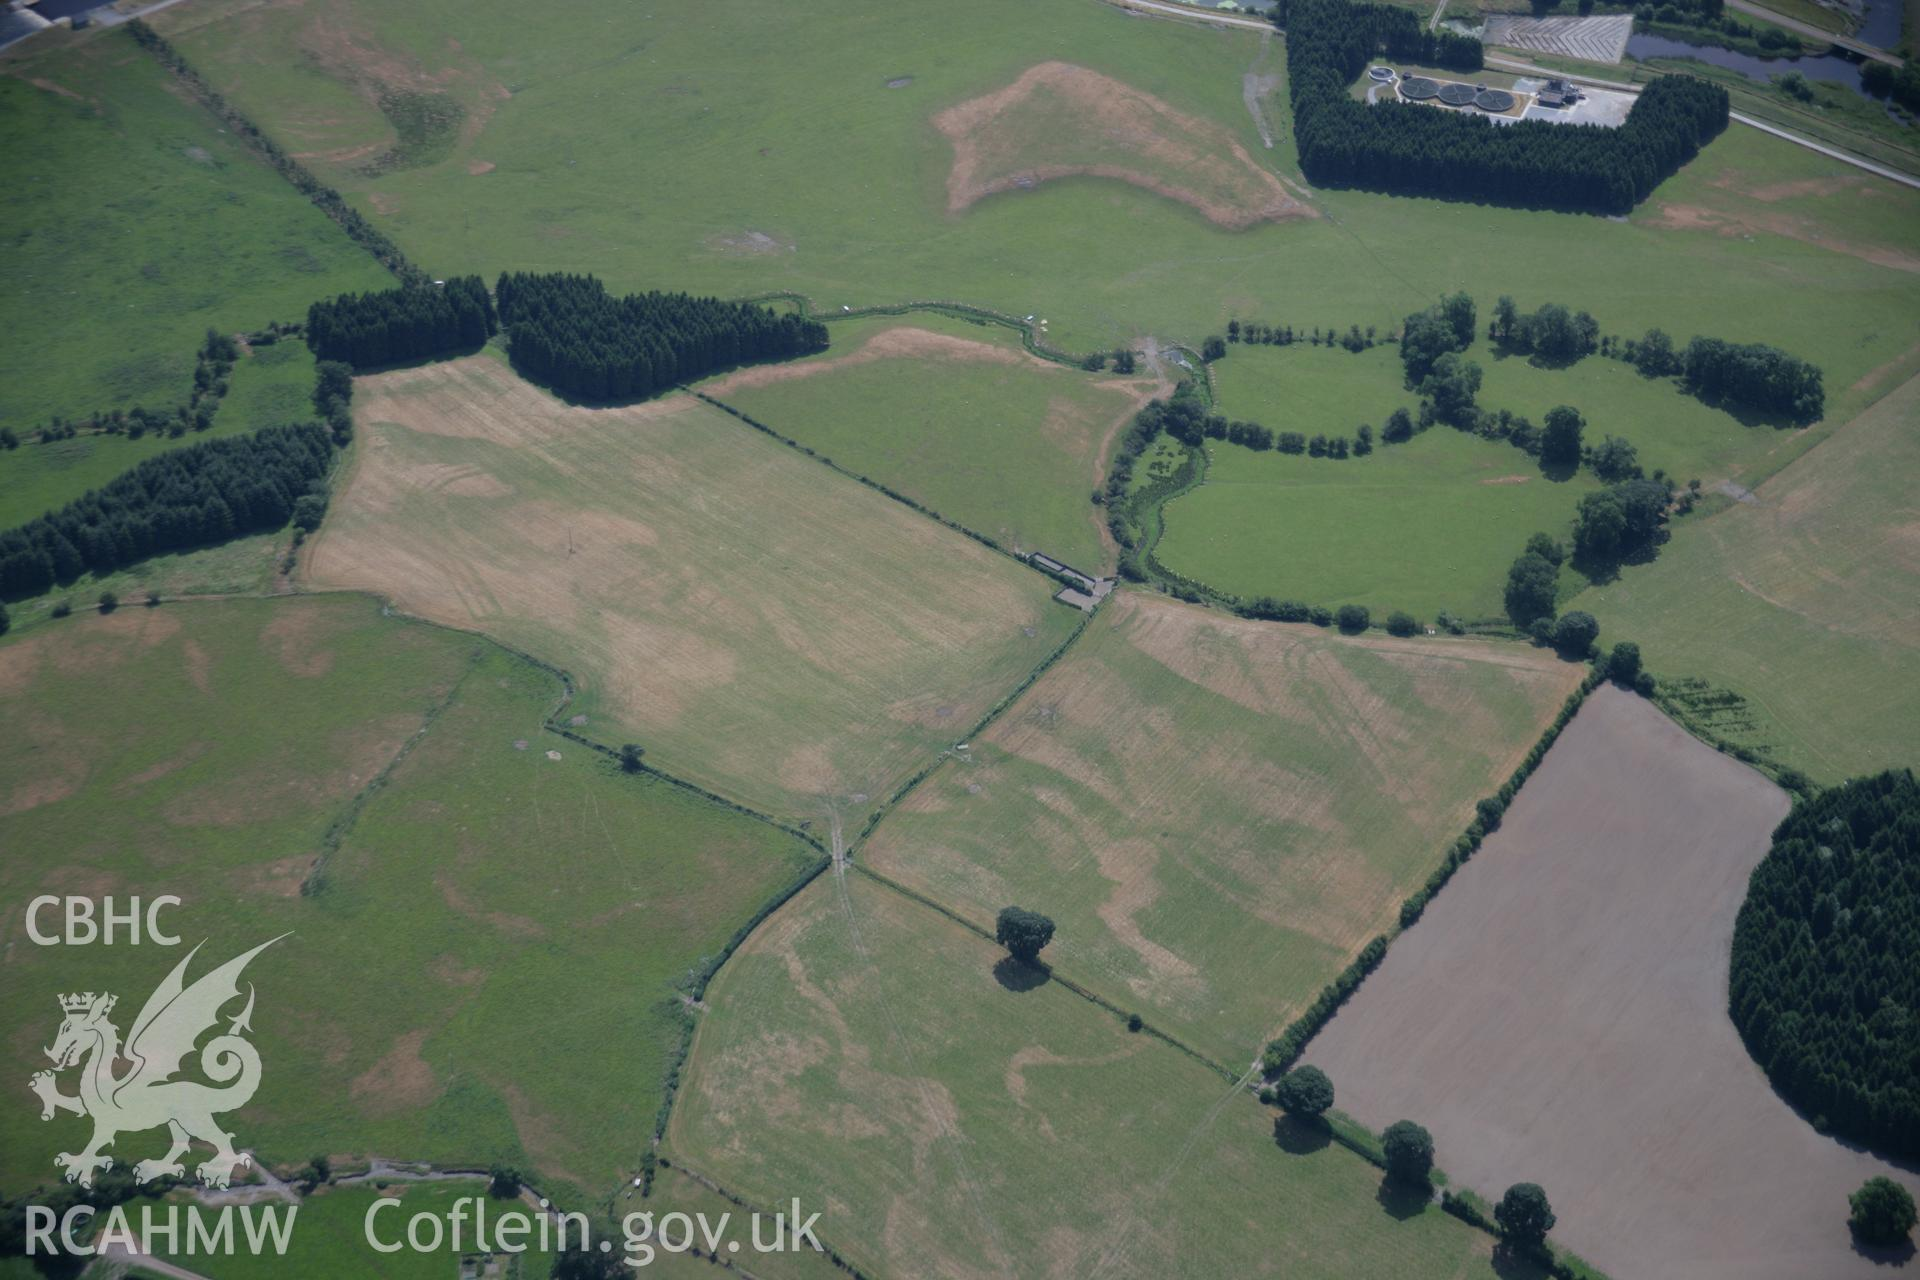 RCAHMW colour oblique aerial photograph of Llanfor Roman Fort. Taken on 25 July 2006 by Toby Driver.